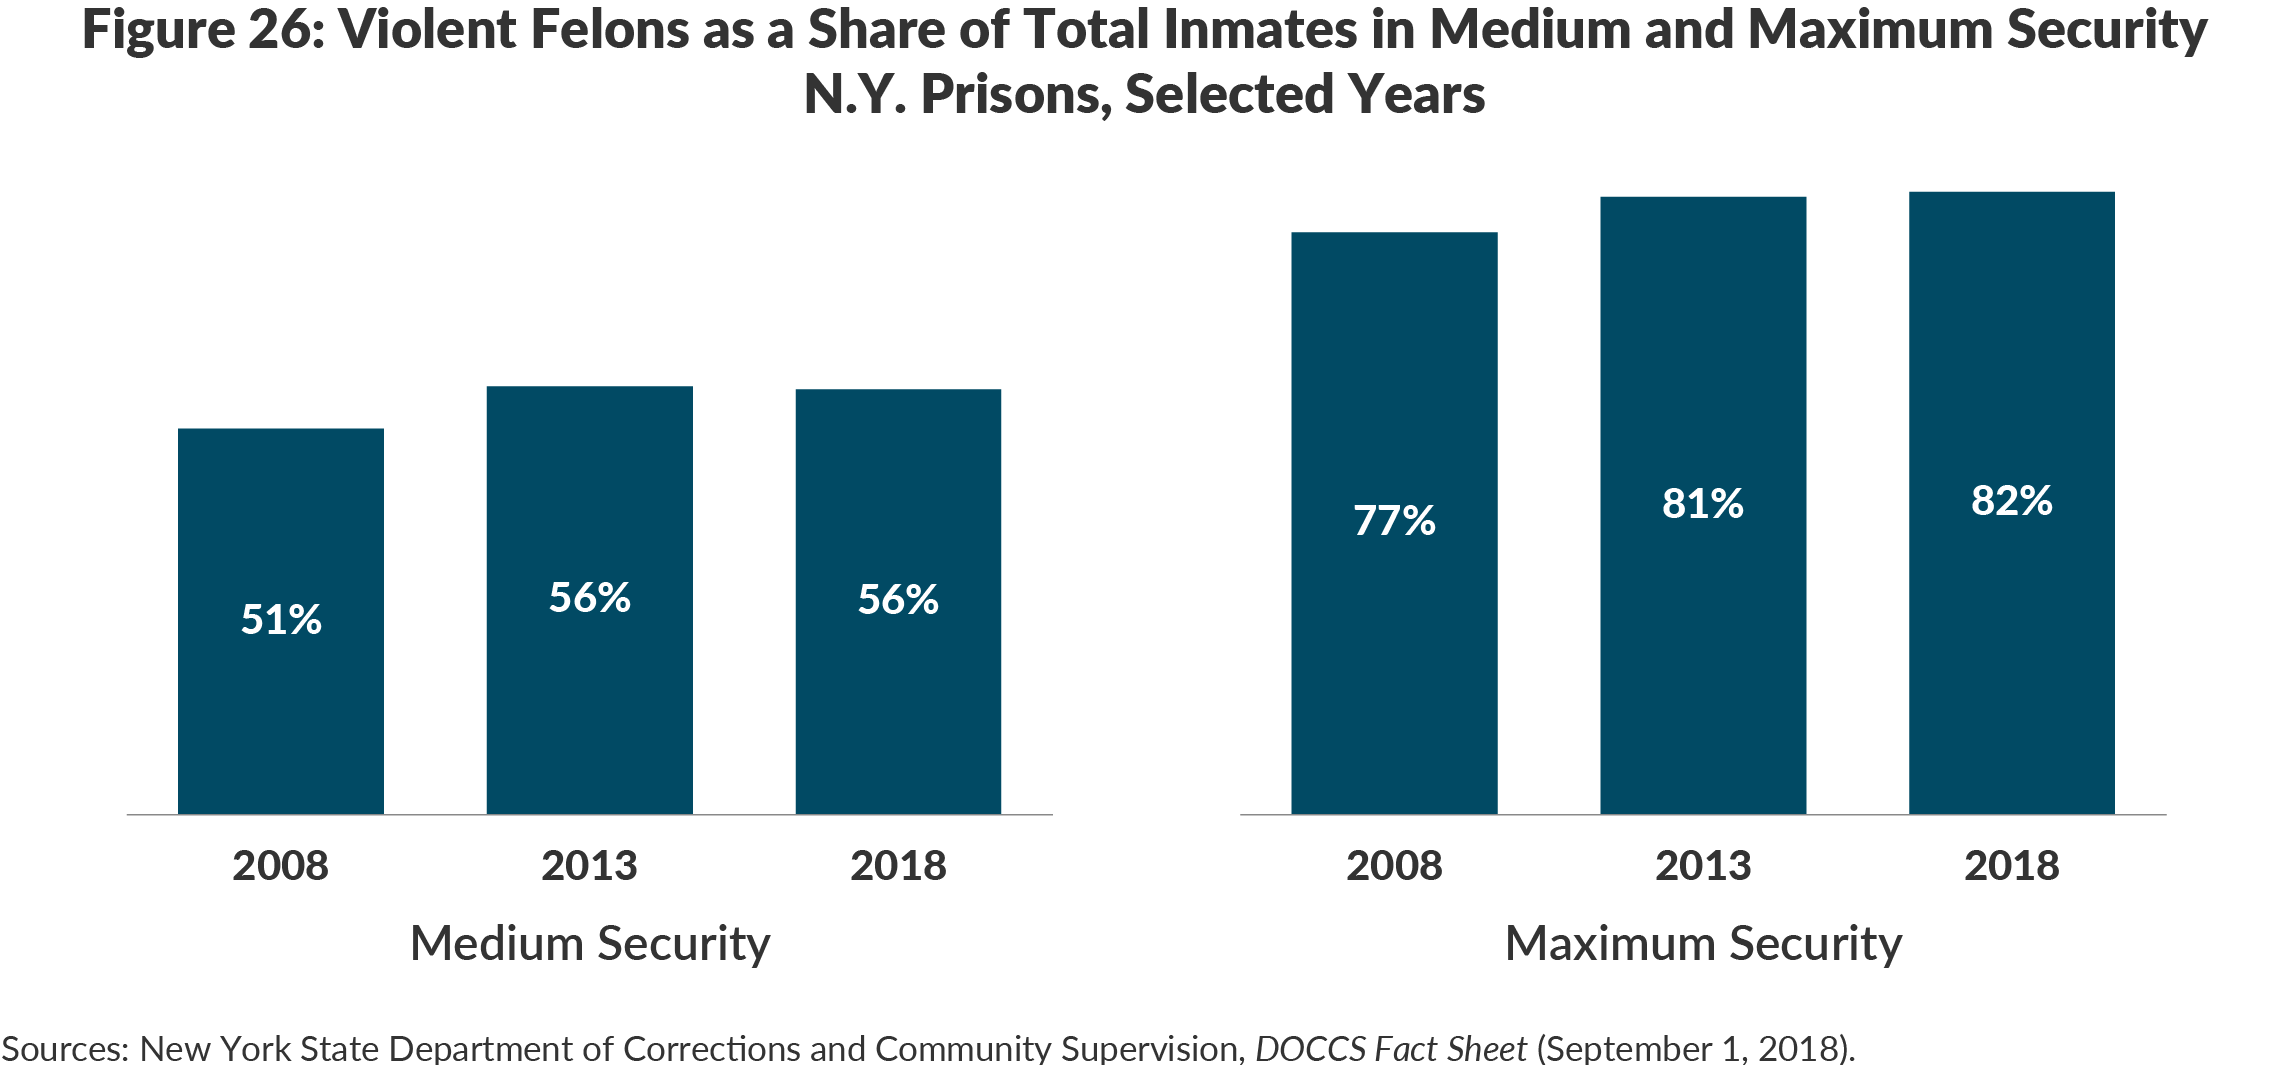 Figure 26: Violent Felons as a Share of Total Inmates in Medium and Maximum SecurityN.Y. Prisons, Selected Years